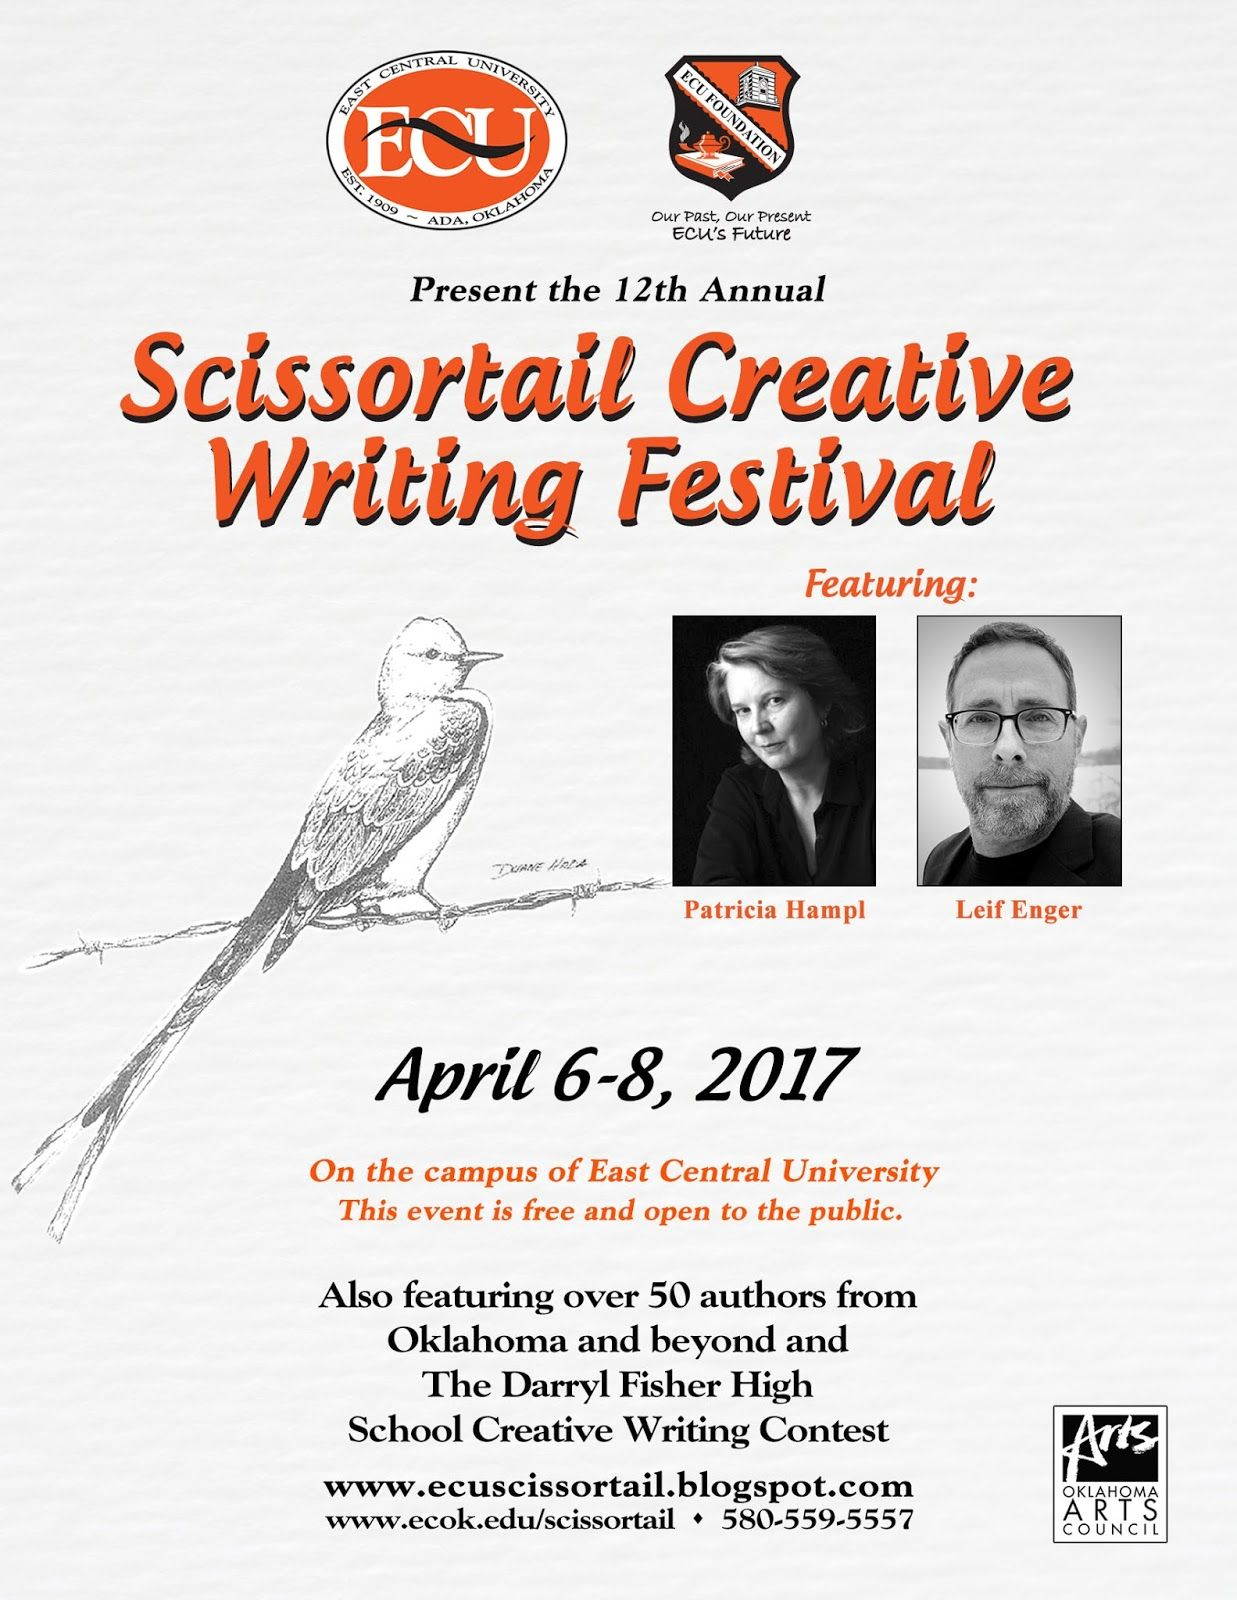 scissortail creative writing festival